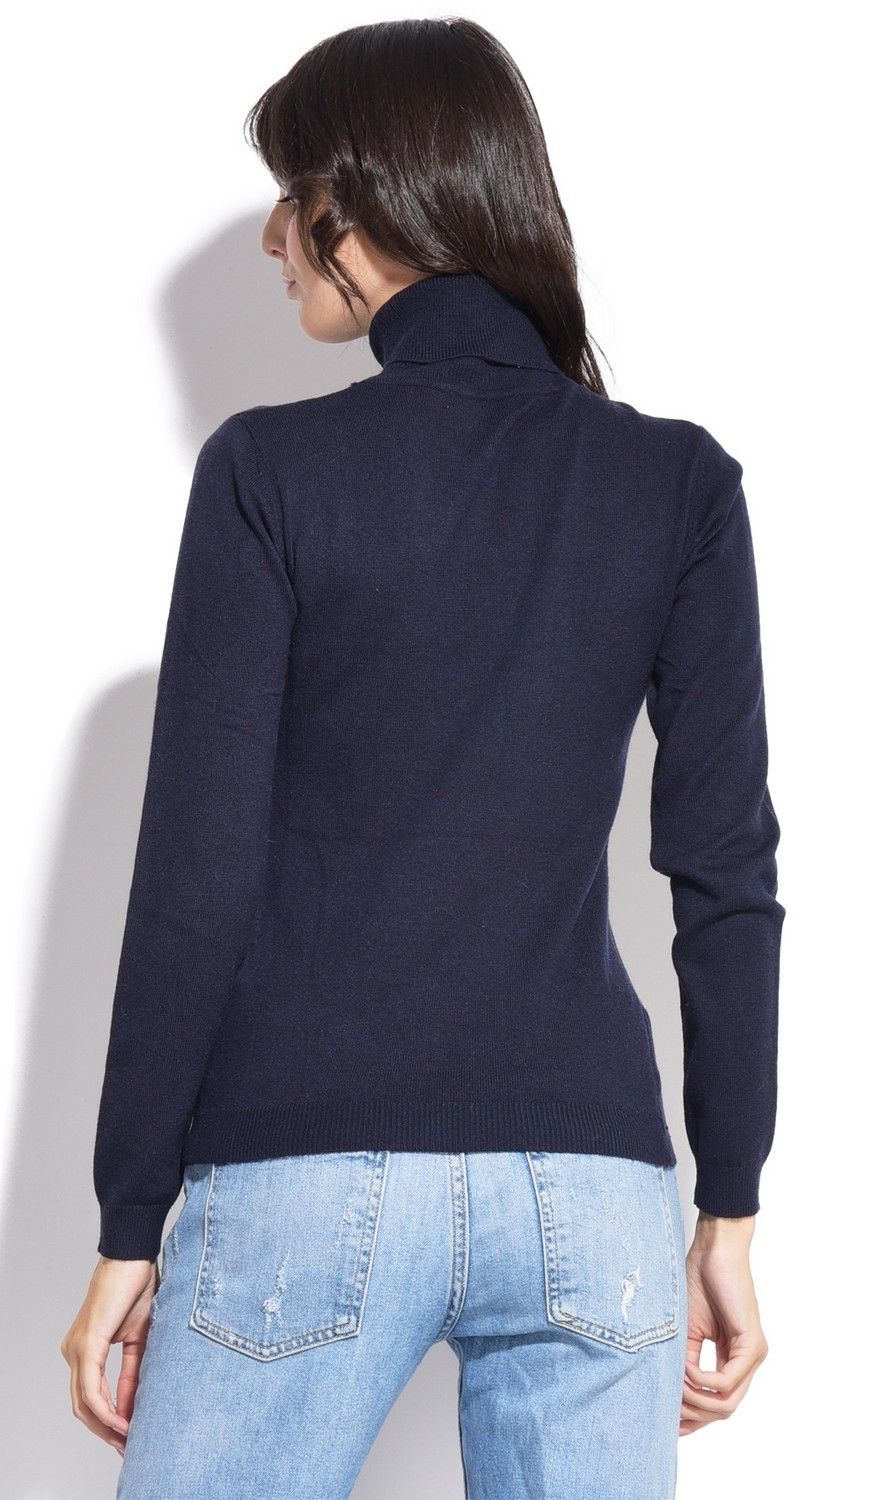 Assuili Turtleneck Ribbed Front Sweater in Navy